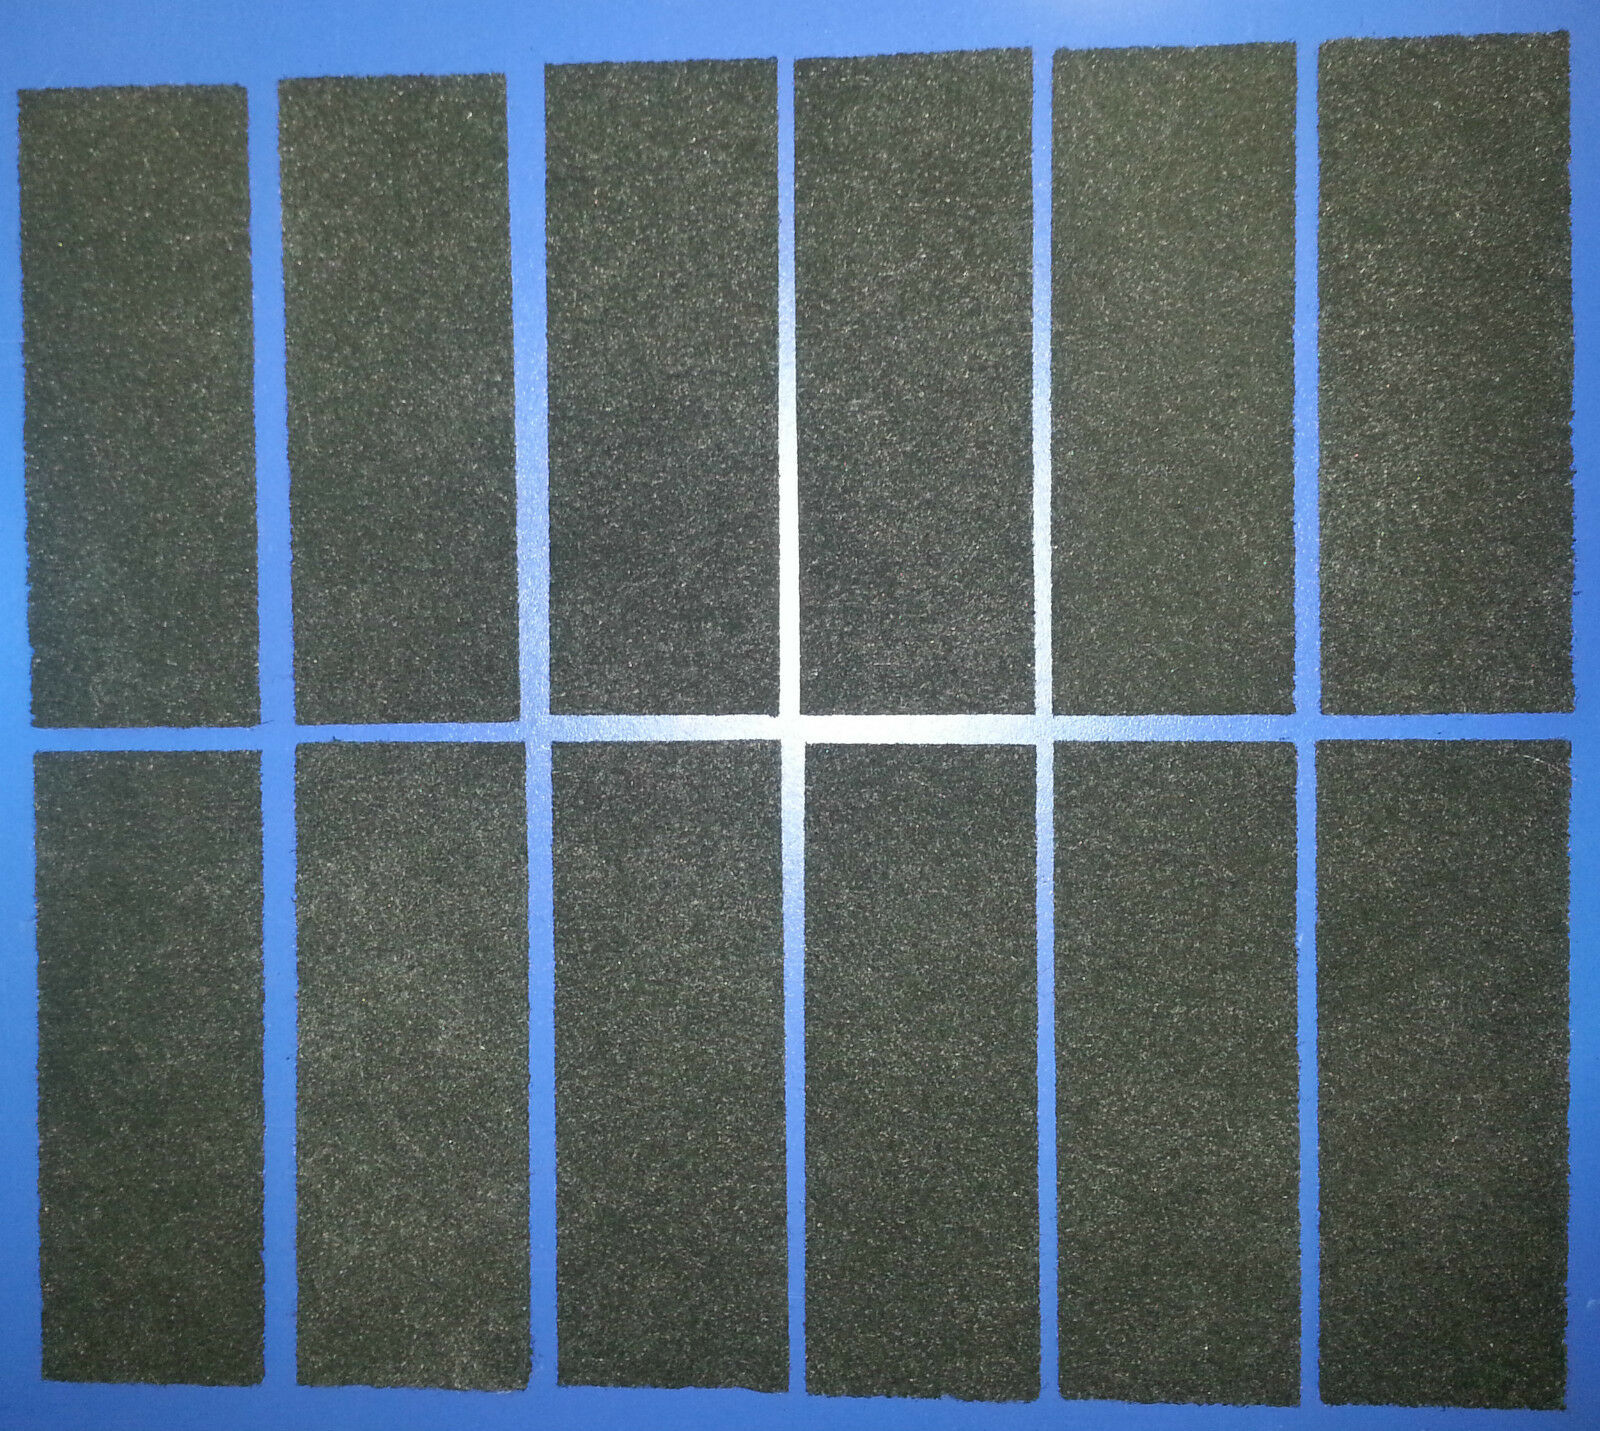 Carbon Compatible For U3 Power Filter Pads Replacement Media For U 3